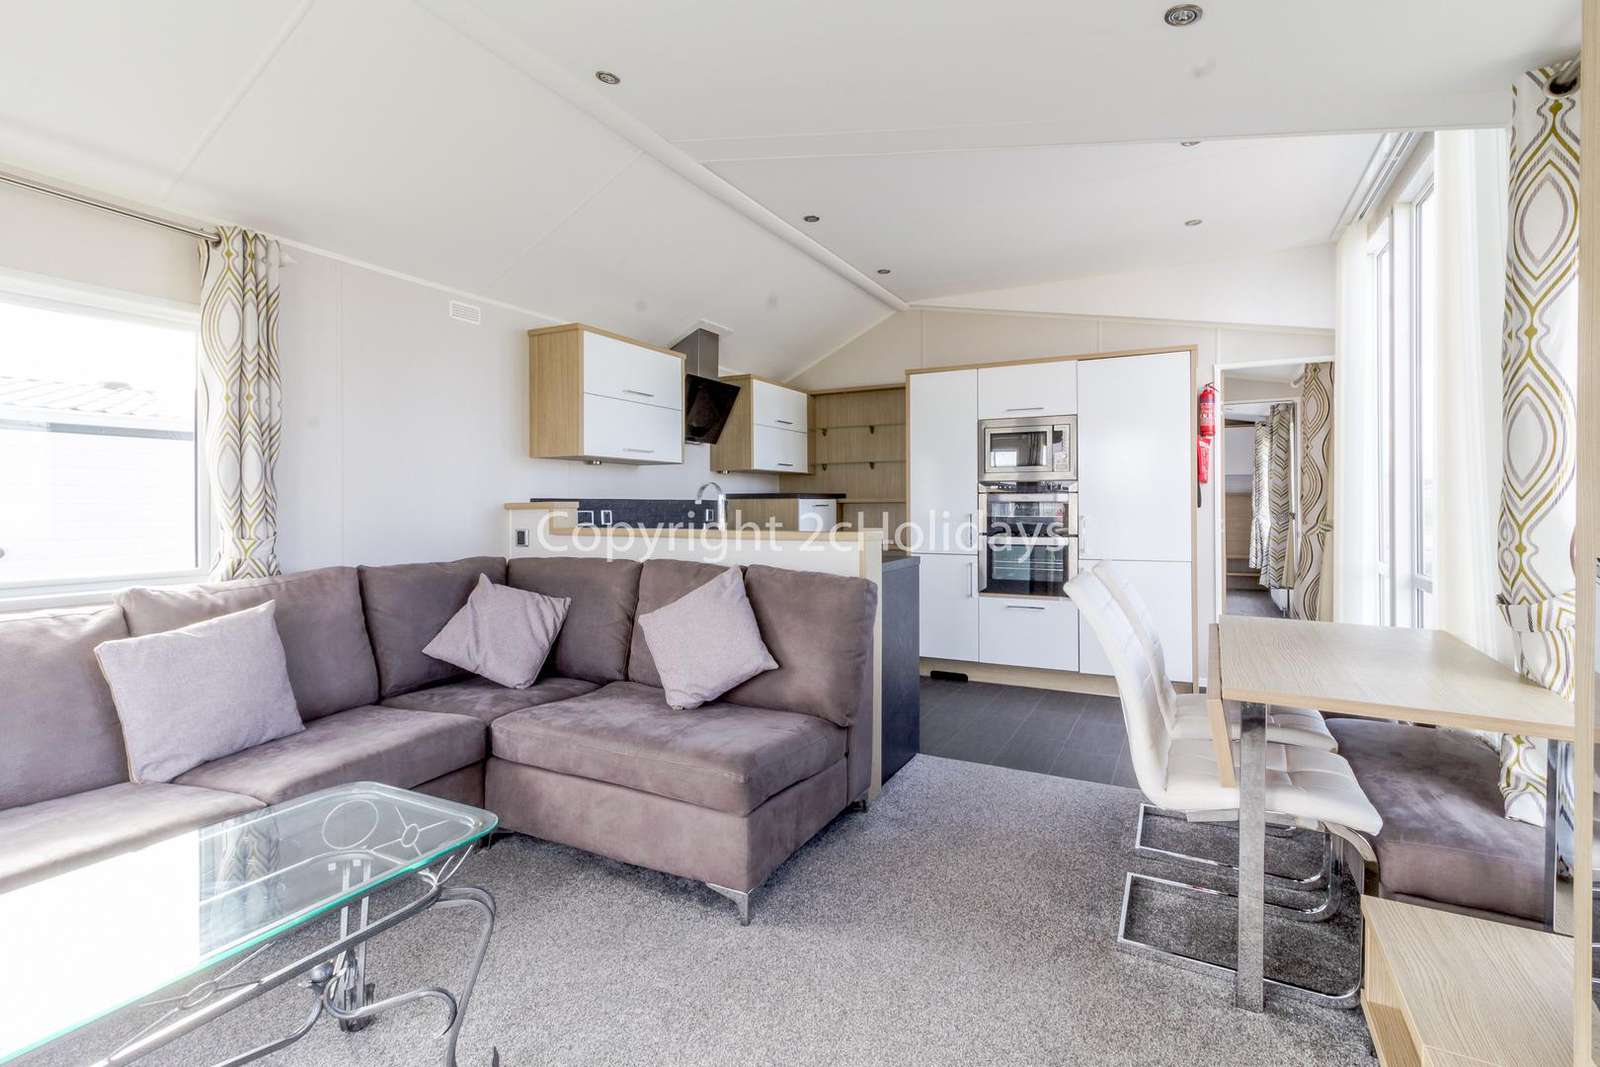 Plenty of space for you and your family!